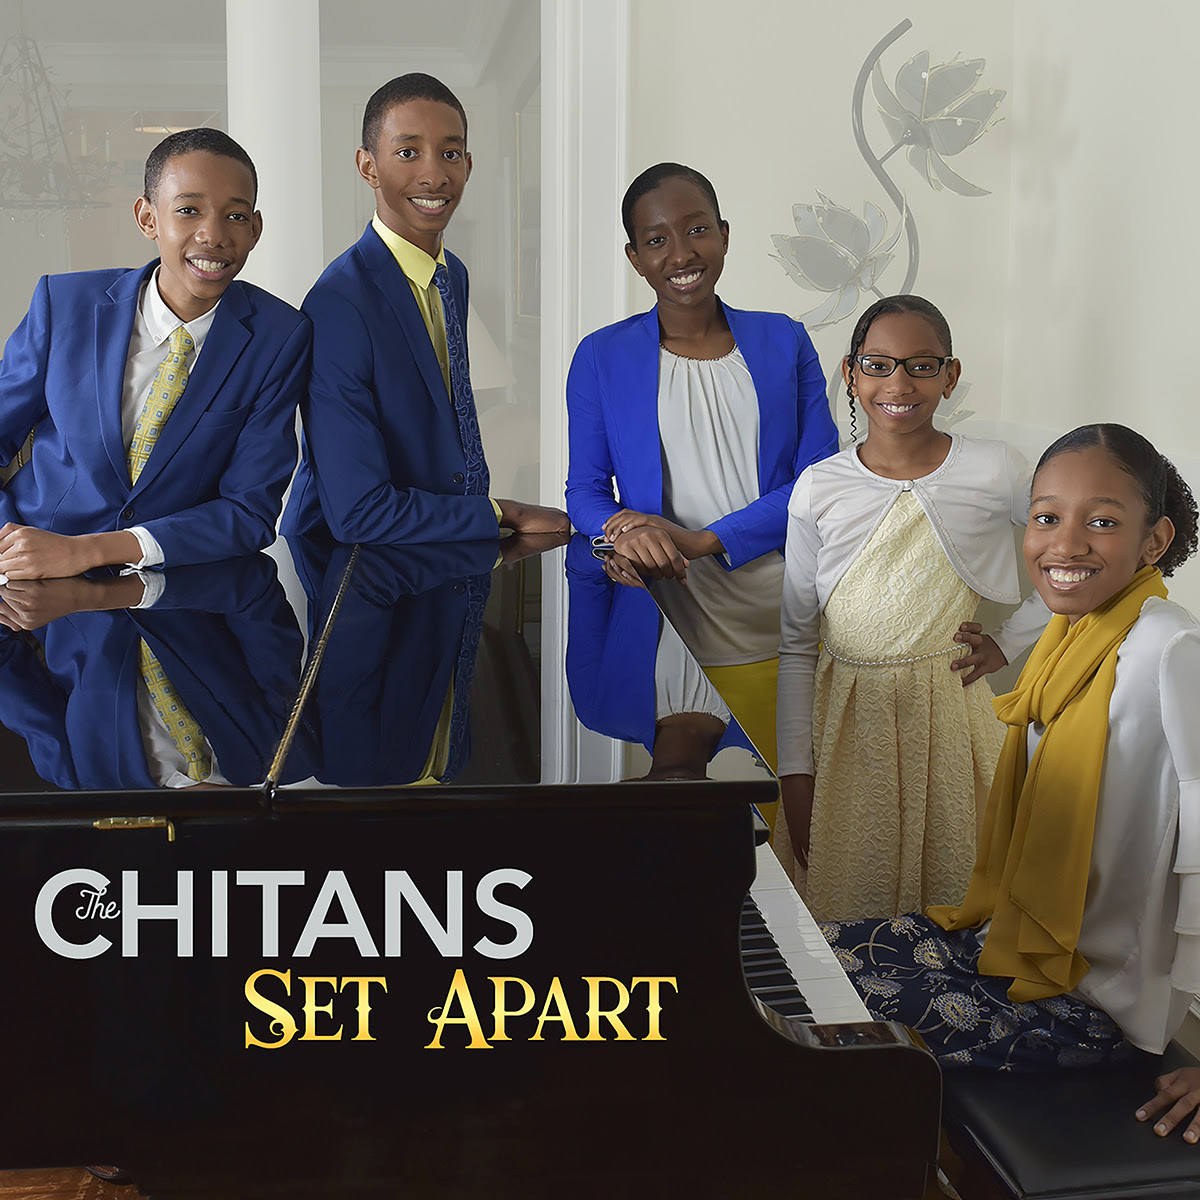 The Chitans to release debut album with Horizon Records